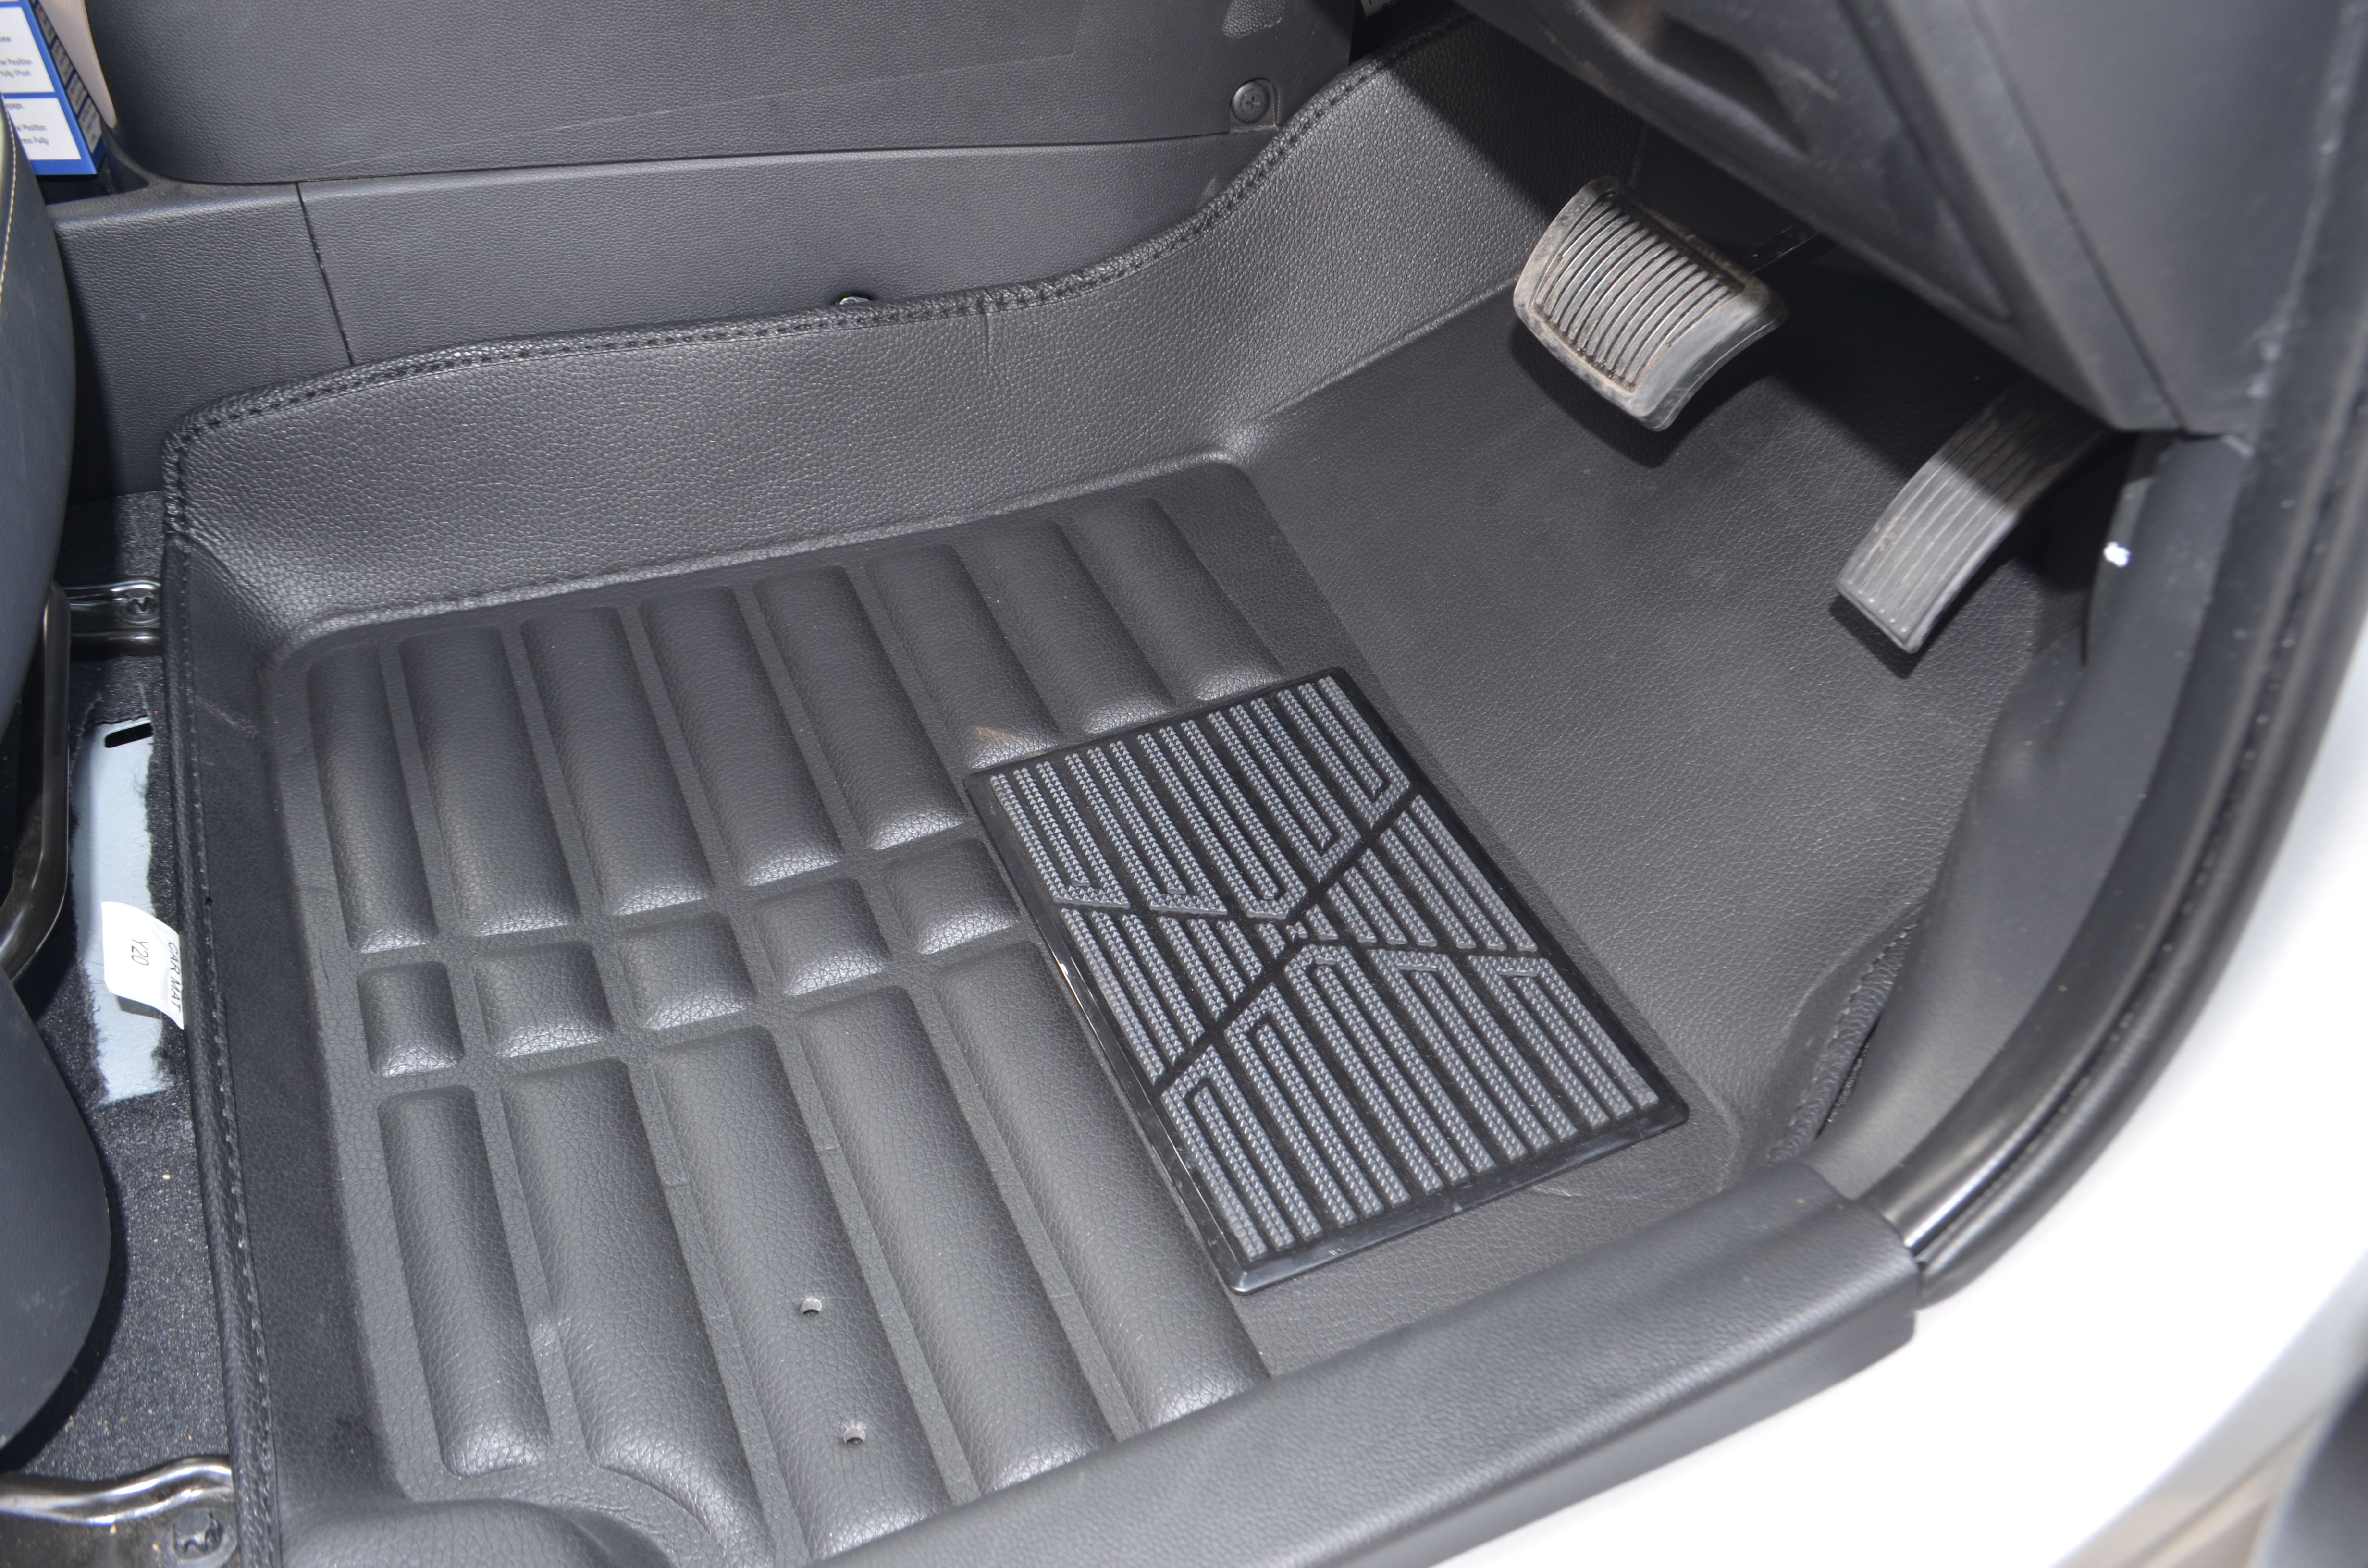 kmh 5D mats Installed in I10 grand Shop online at Carplus within